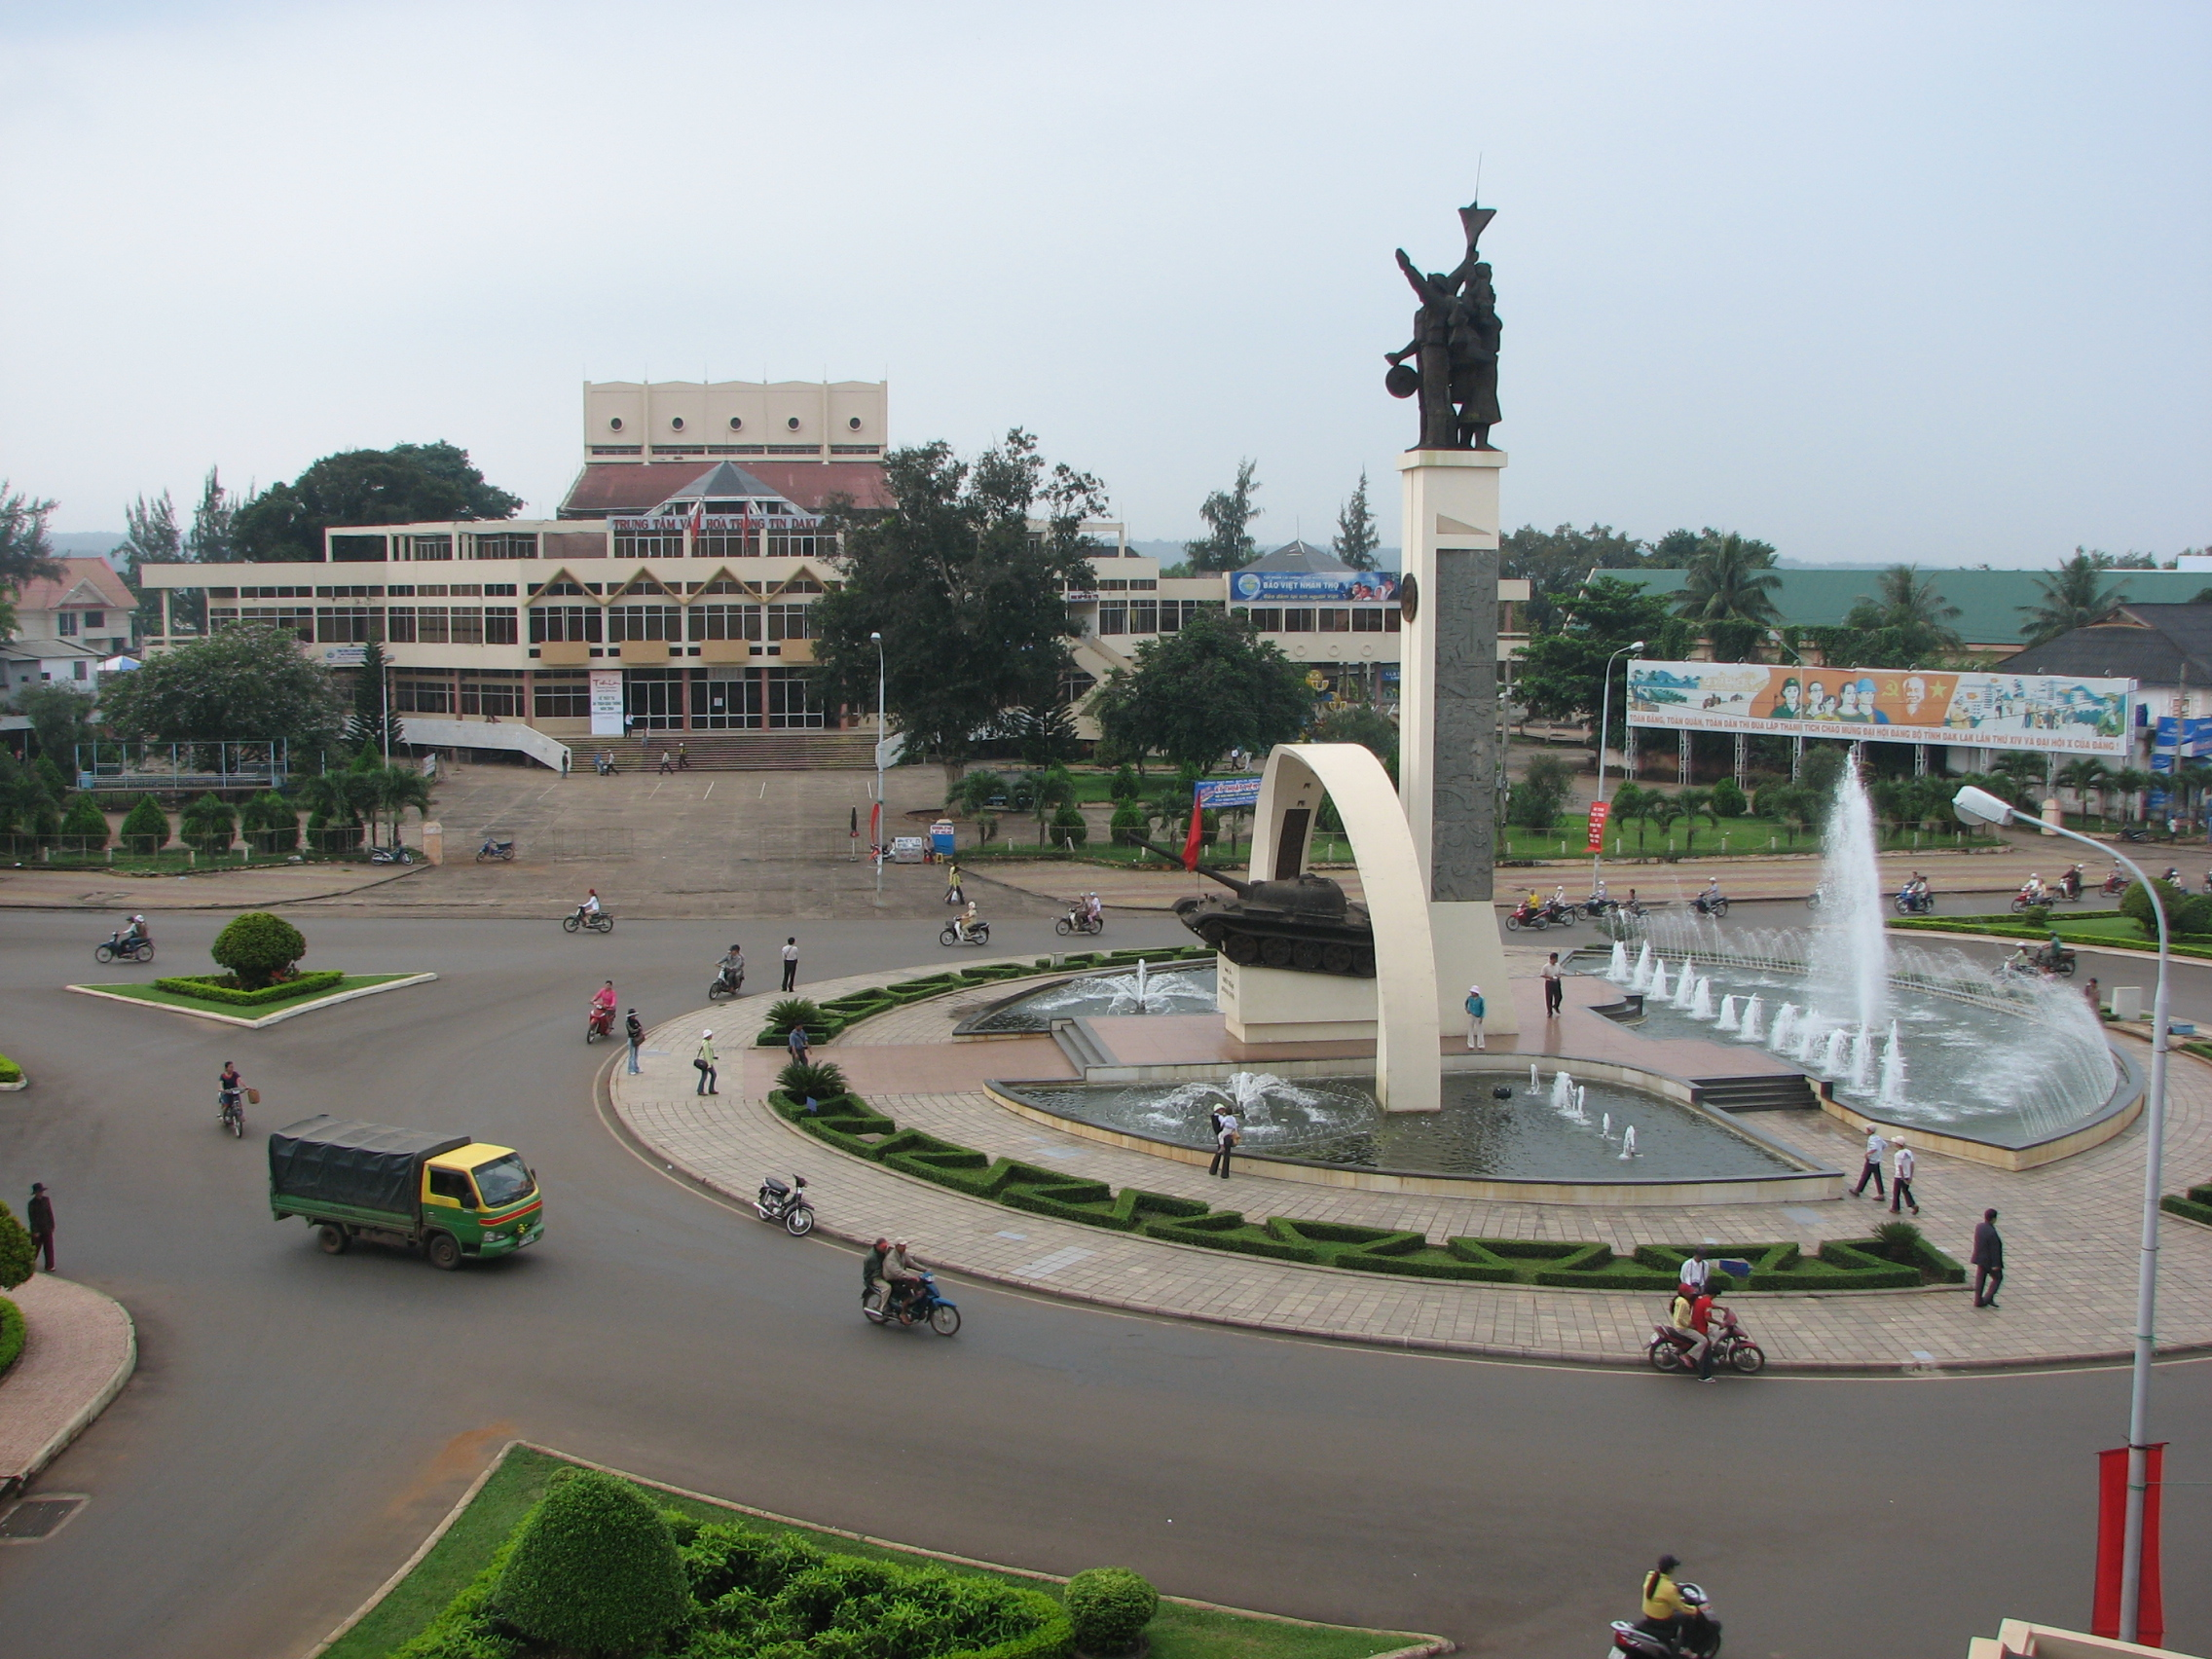 Buon Ma Thuot Vietnam  city photos : Original file ‎ 2,272 × 1,704 pixels, file size: 1.62 MB, MIME ...